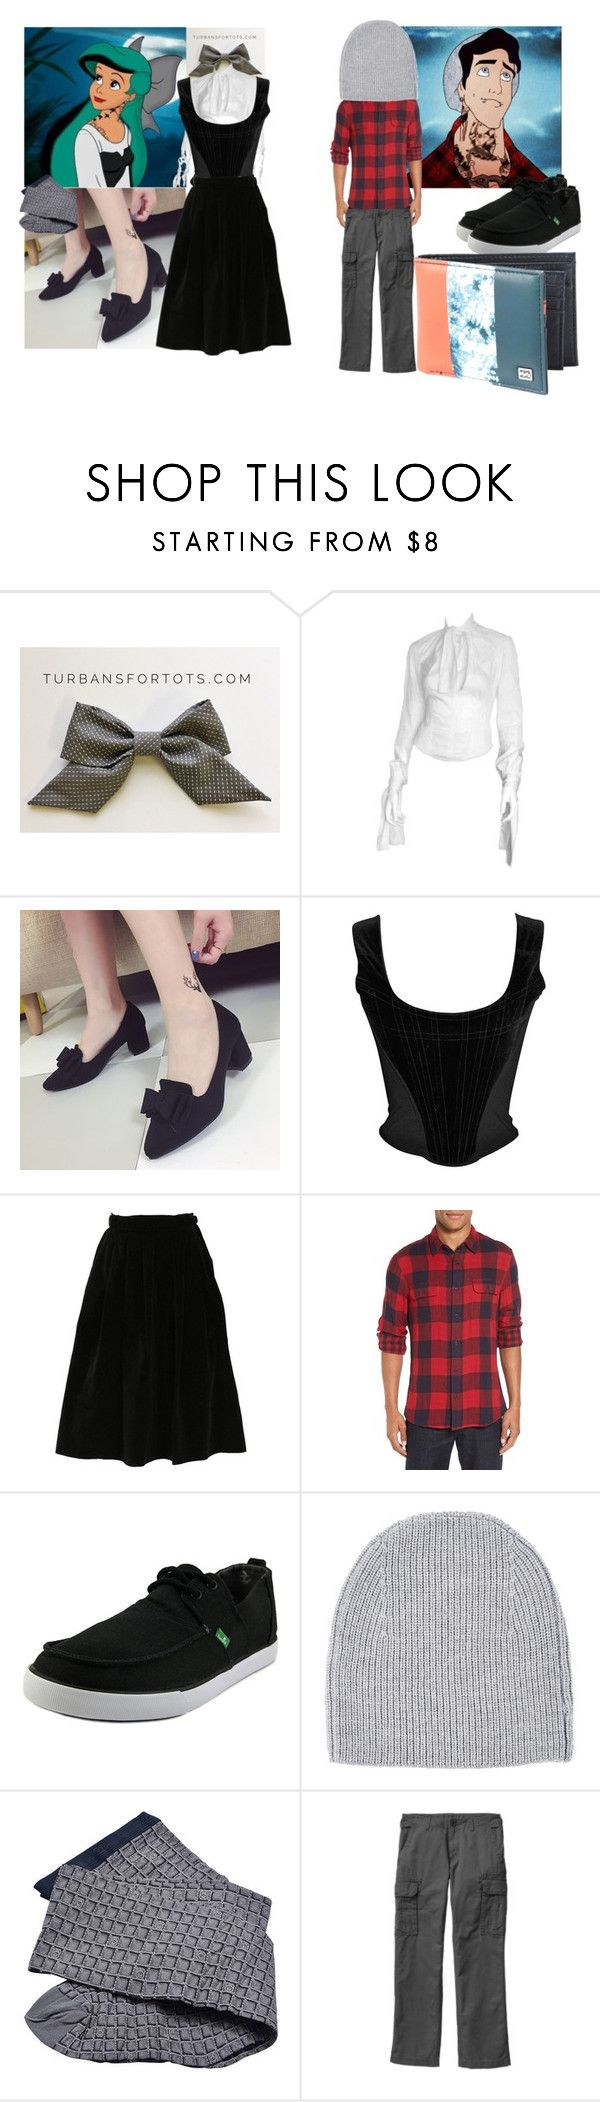 """Kiss the Punk"" by lerp ❤ liked on Polyvore featuring Disney, Tom Ford, Vivienne Westwood, Christian Dior, Nordstrom, sanuk, Chanel, Gap, Billabong and men's fashion"